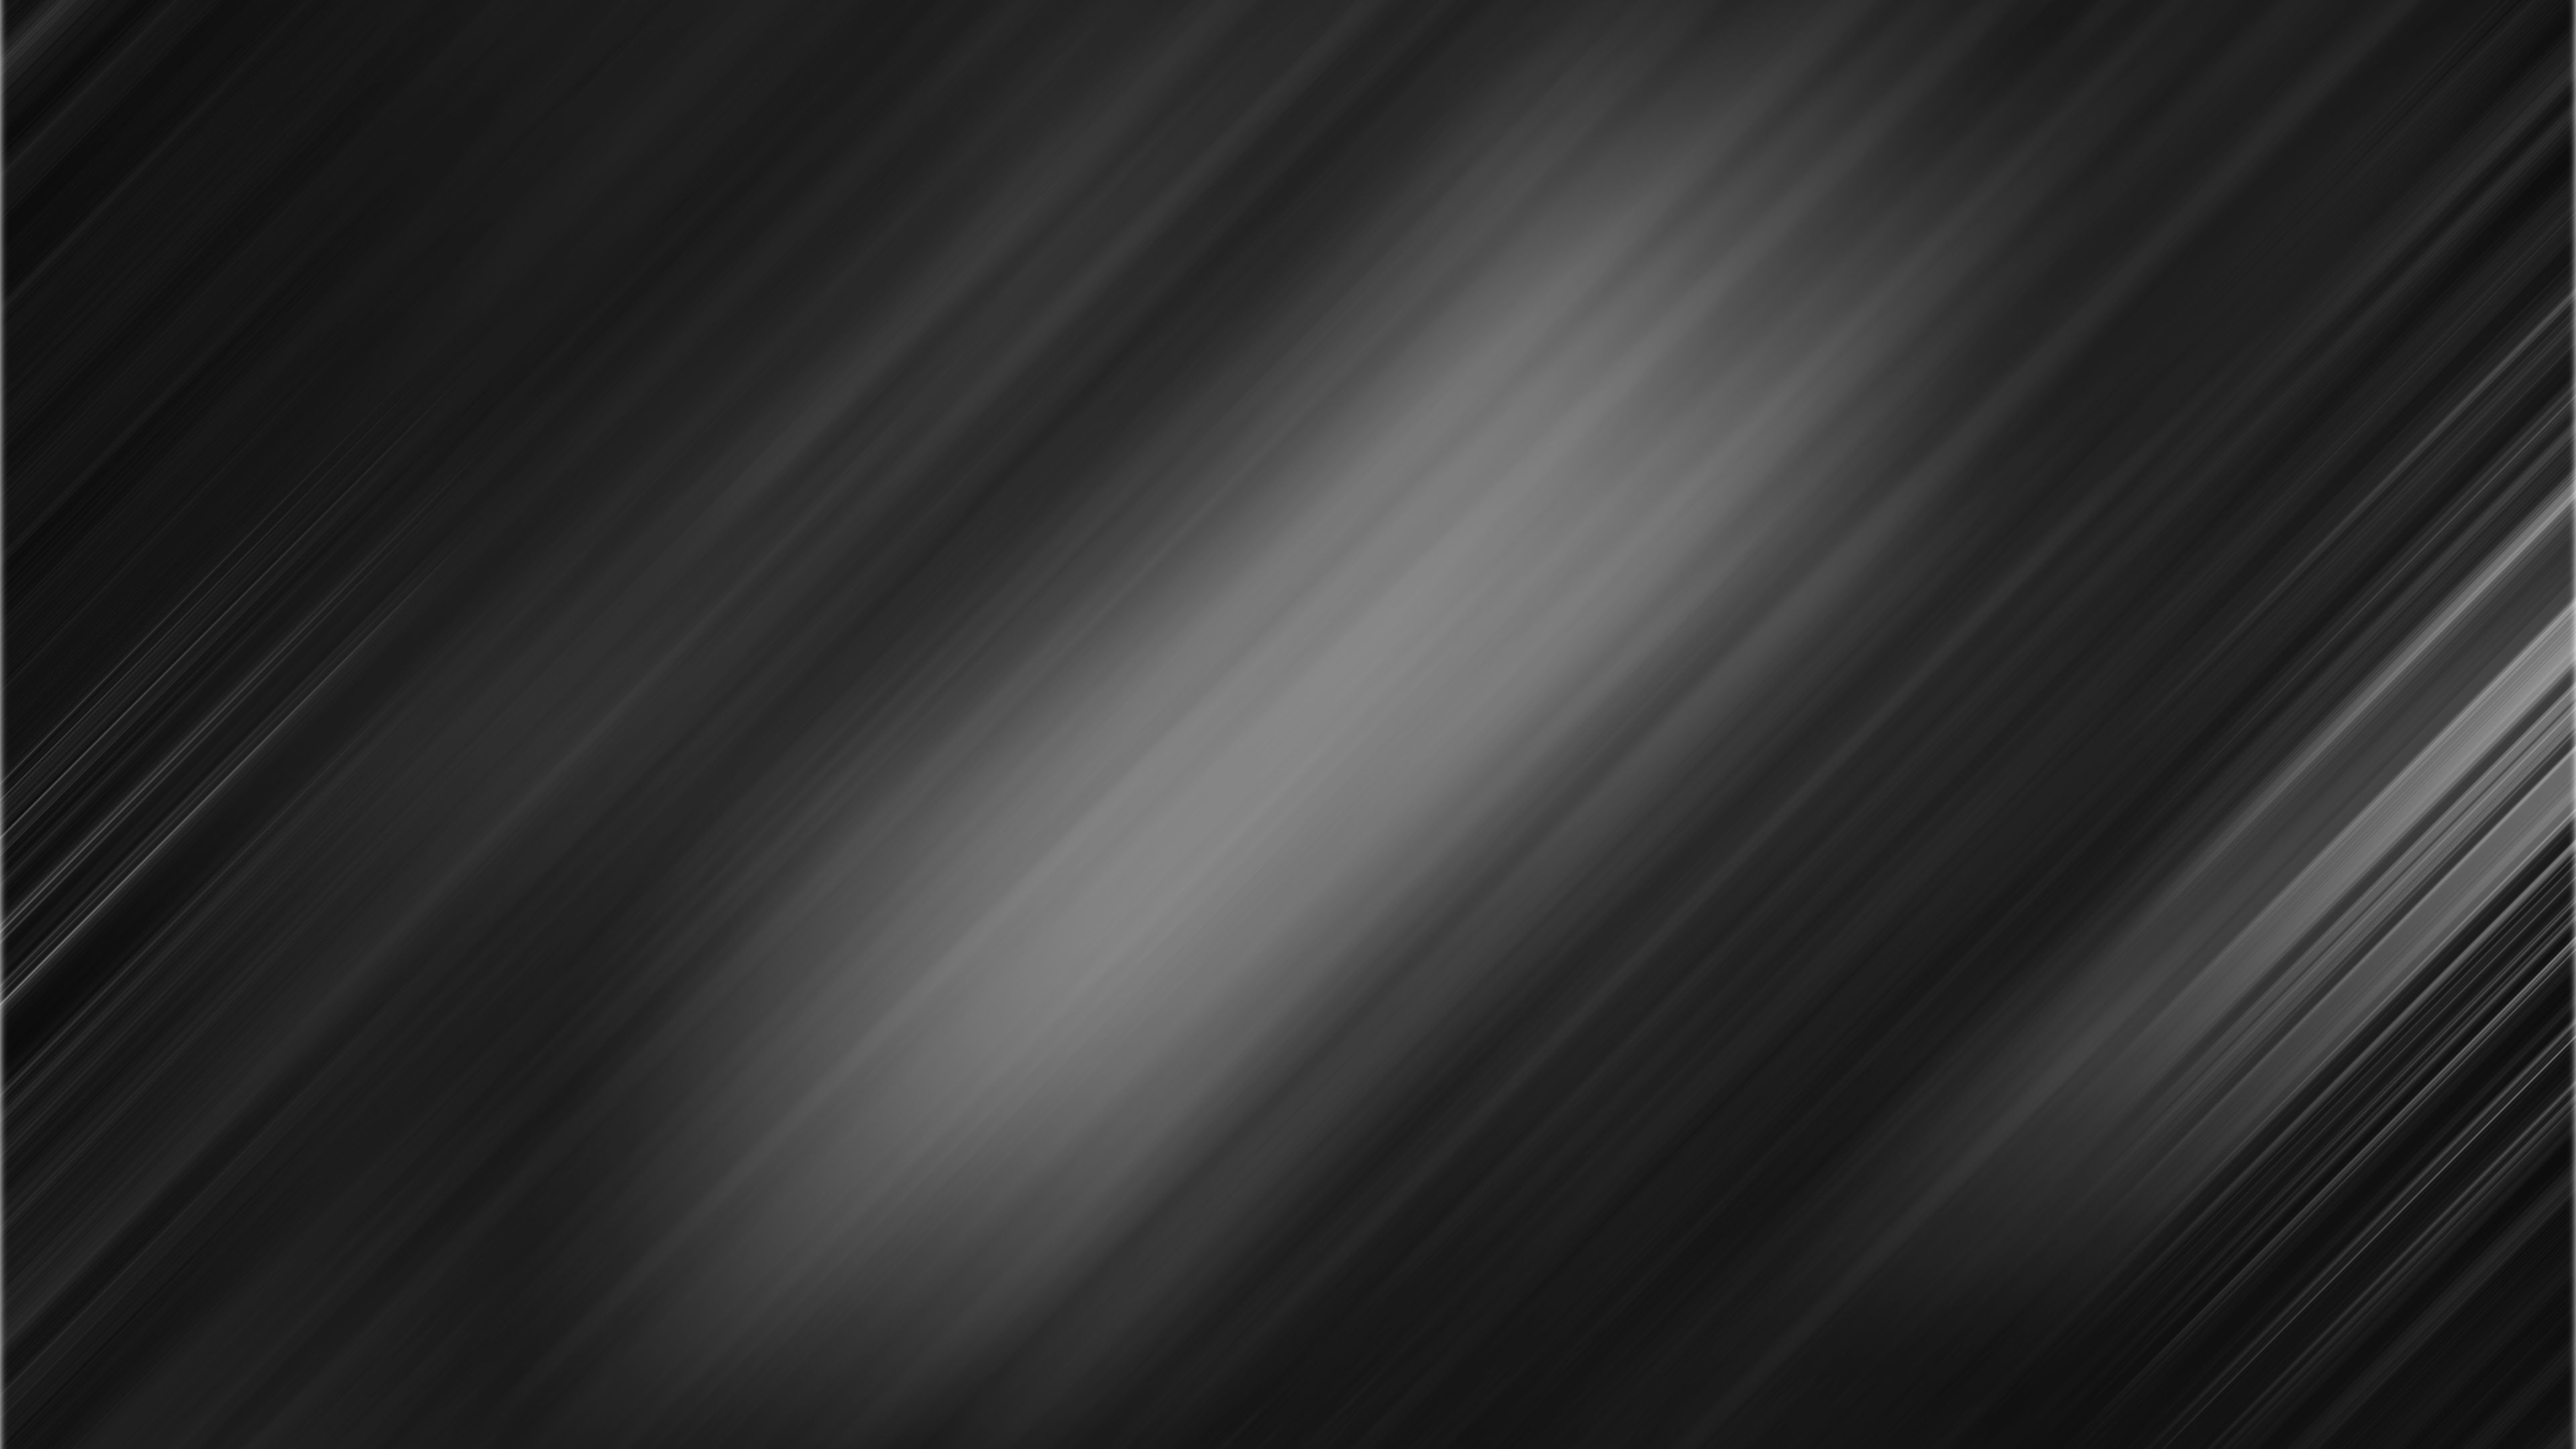 Graphite Abstract Dark 4k Hd Wallpapers Deviantart Wallpapers Abstract Wallpapers 5k Wallpapers 4k Wallpap Abstract Wallpaper Widescreen Wallpaper Abstract